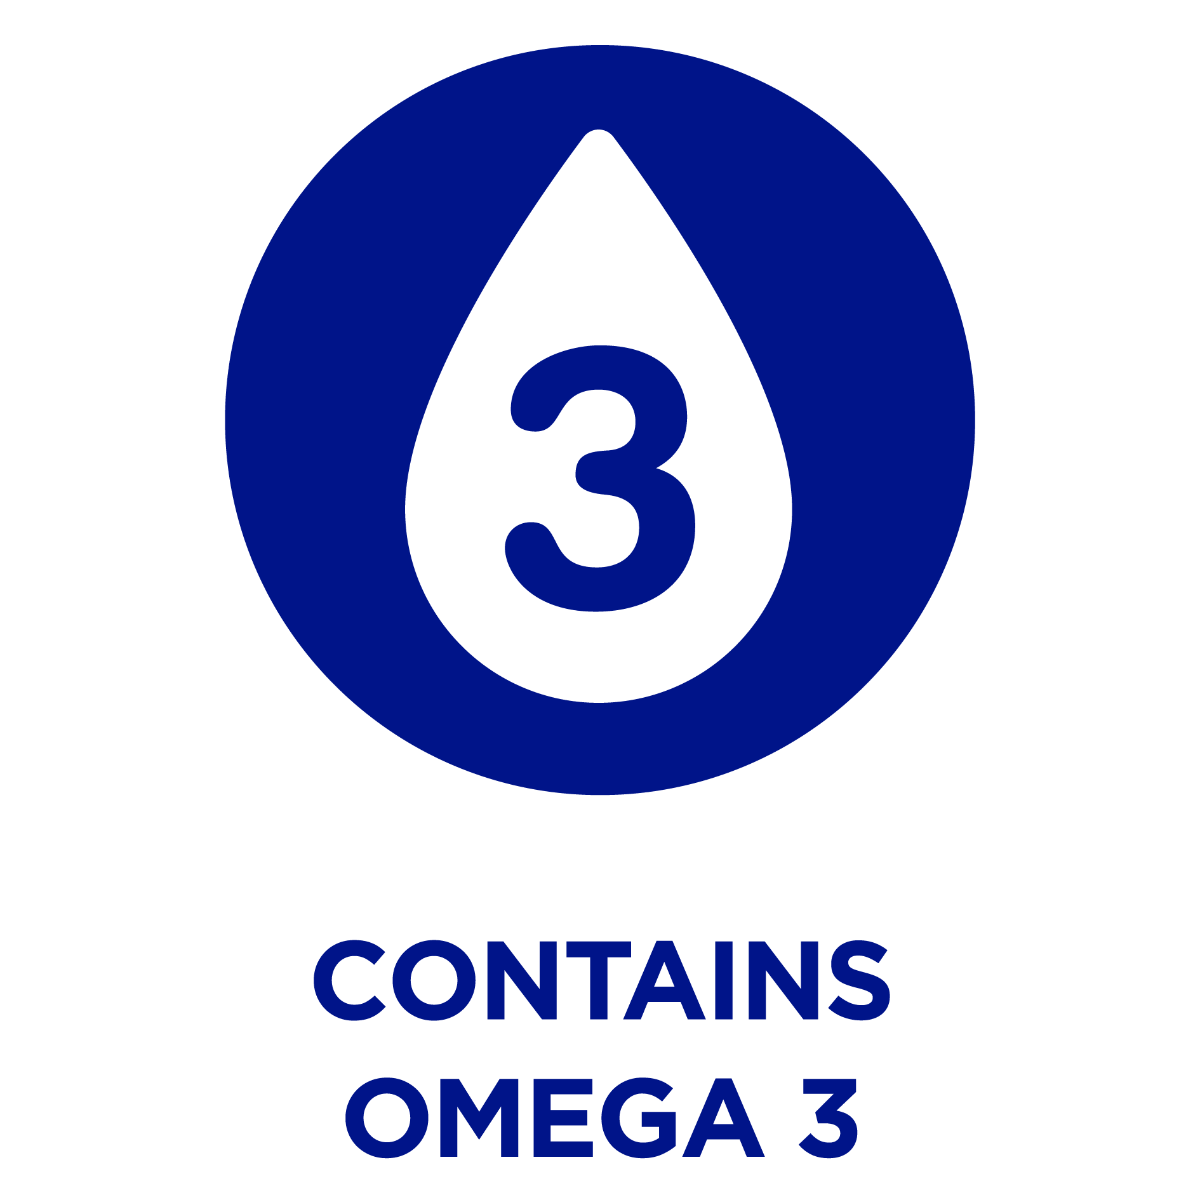 Contains Omega 3